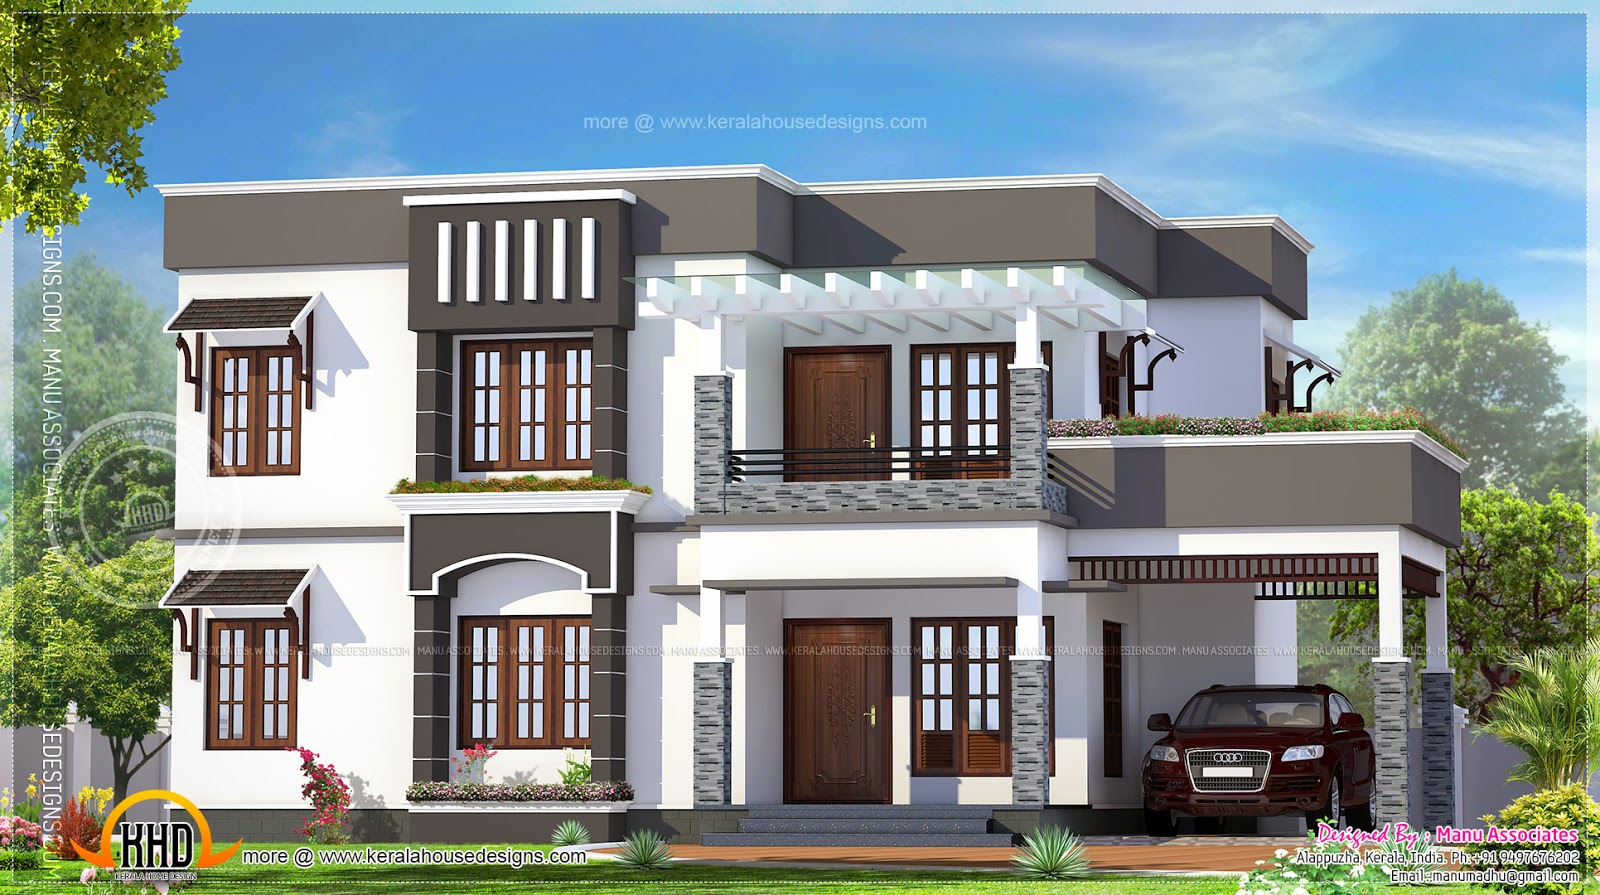 4 bhk flat roof house exterior kerala home design and for Flat roof home plans